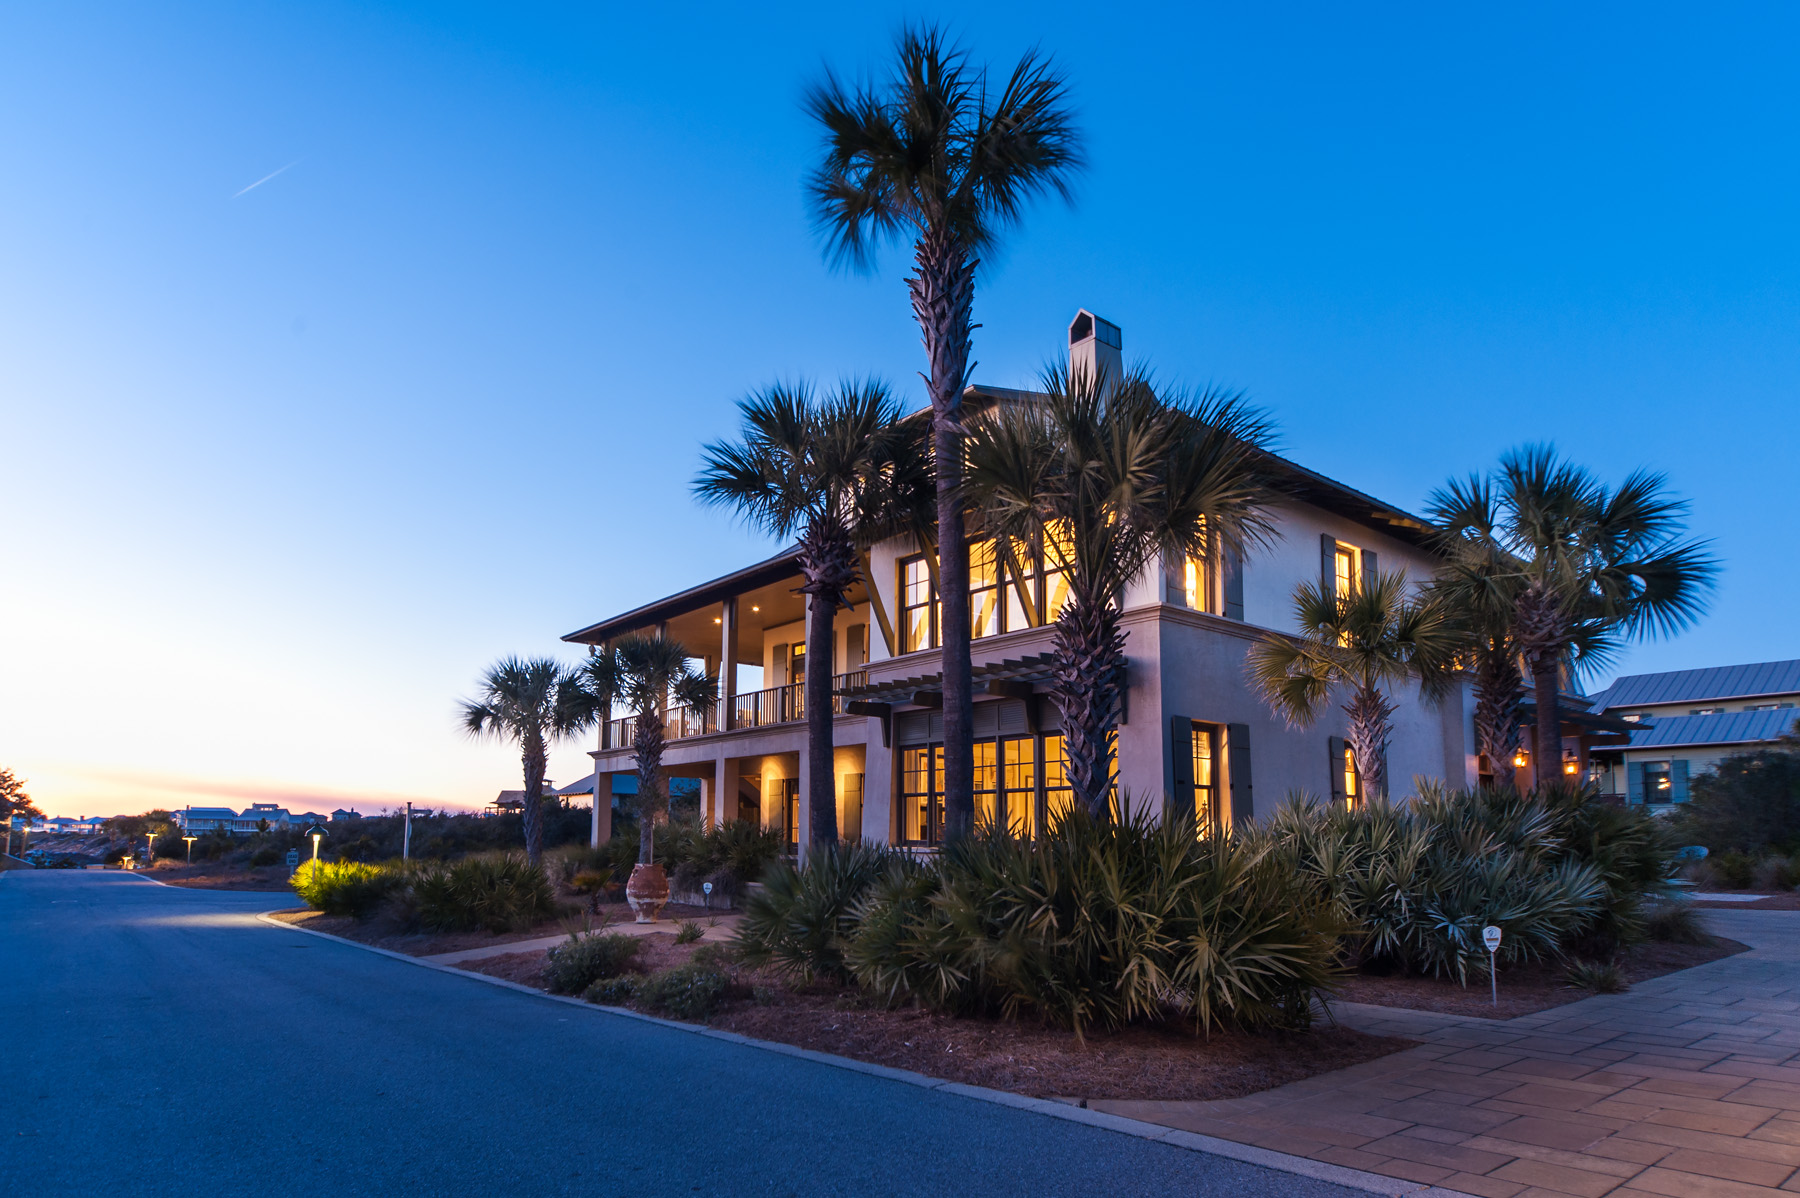 Single Family Home for Sale at CARIBBEAN STYLE ON THE GULF COAST OF NORTHWEST FLORIDA 94 W Saint Lucia Lane Santa Rosa Beach, Florida, 32459 United States